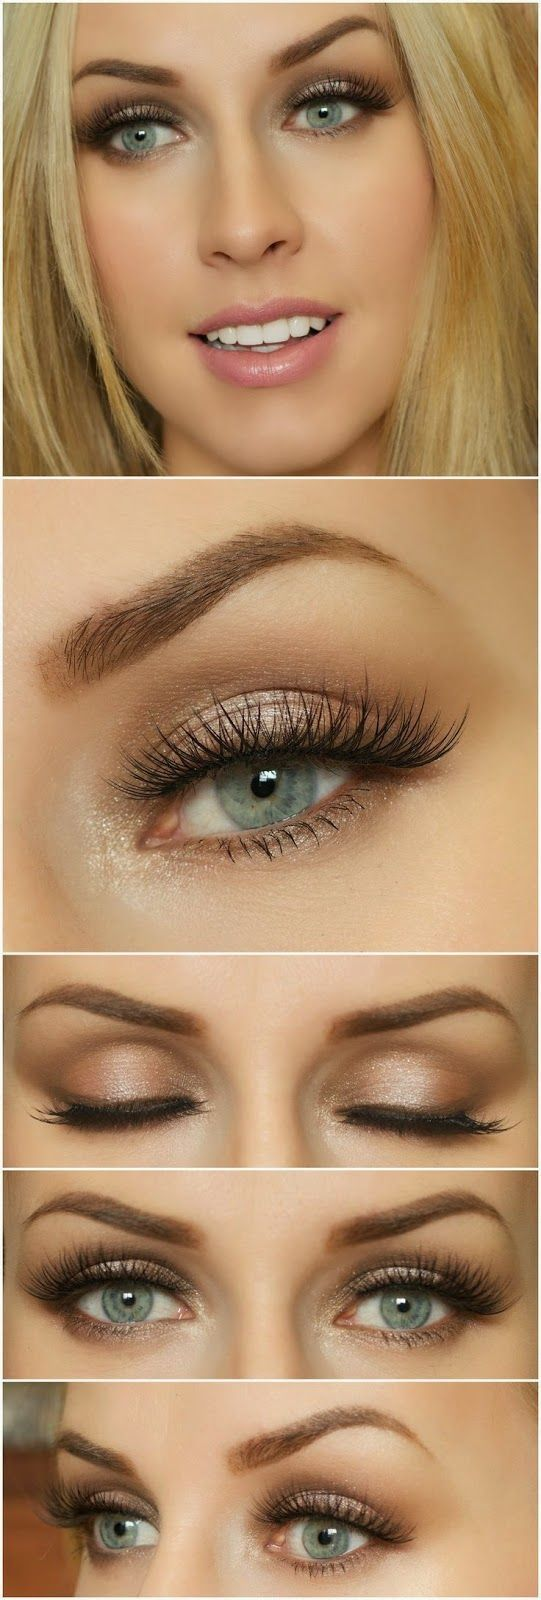 beutiful!! love the lashes.. want it too? Heather Robertson HERE TO HELP YOU BE BEAUTIFUL!!!!!!!!!!!!